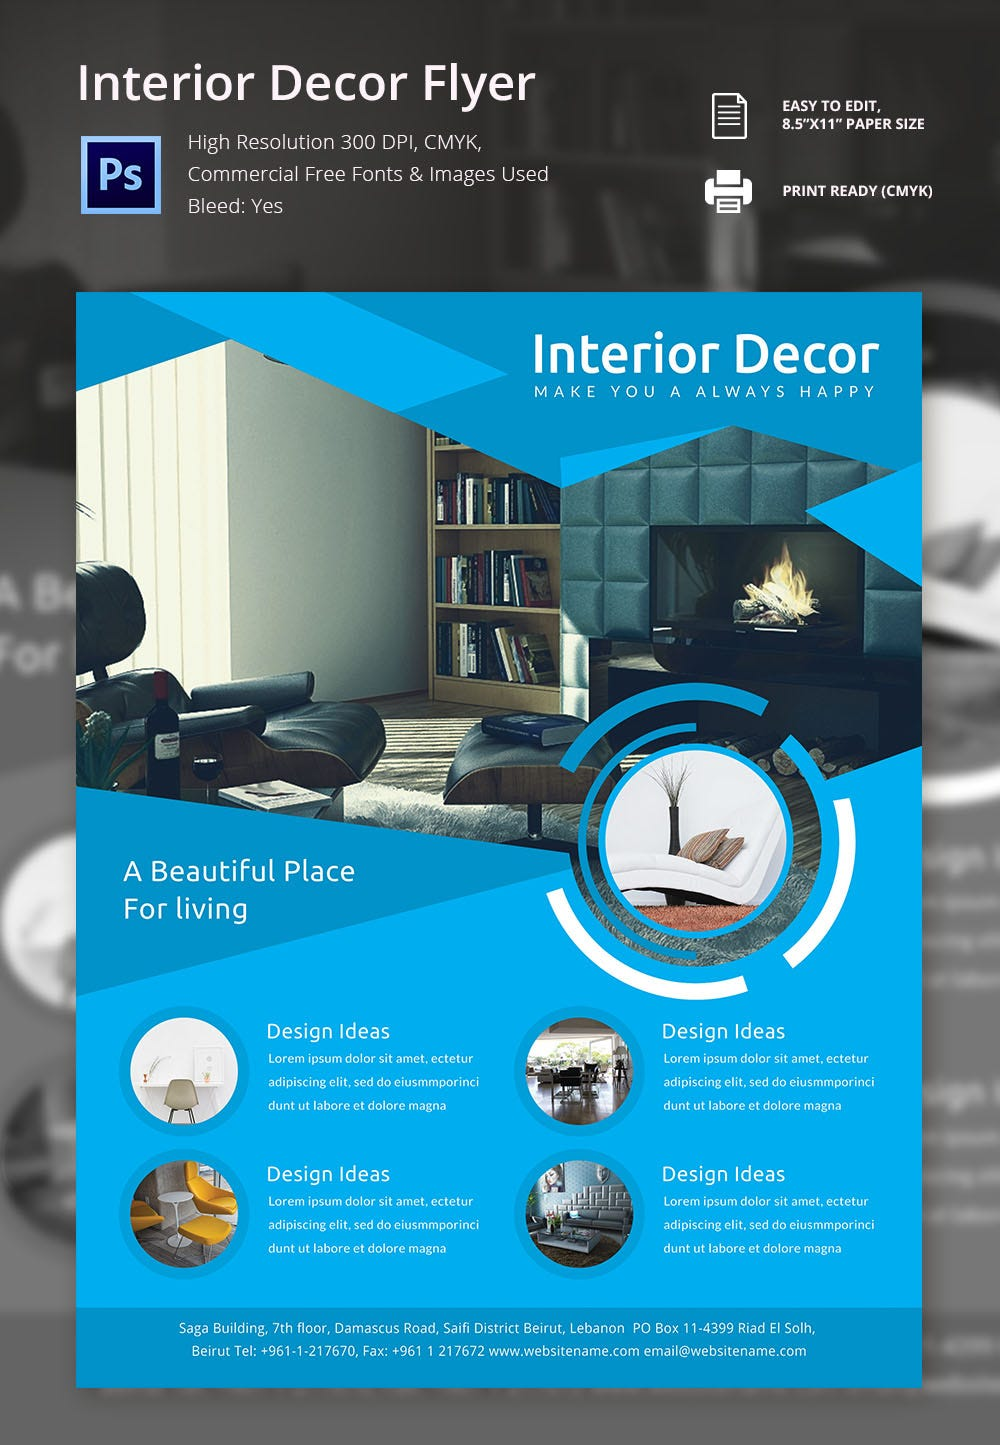 135 psd flyer templates psd eps ai indesign format editable interior decor flyer template